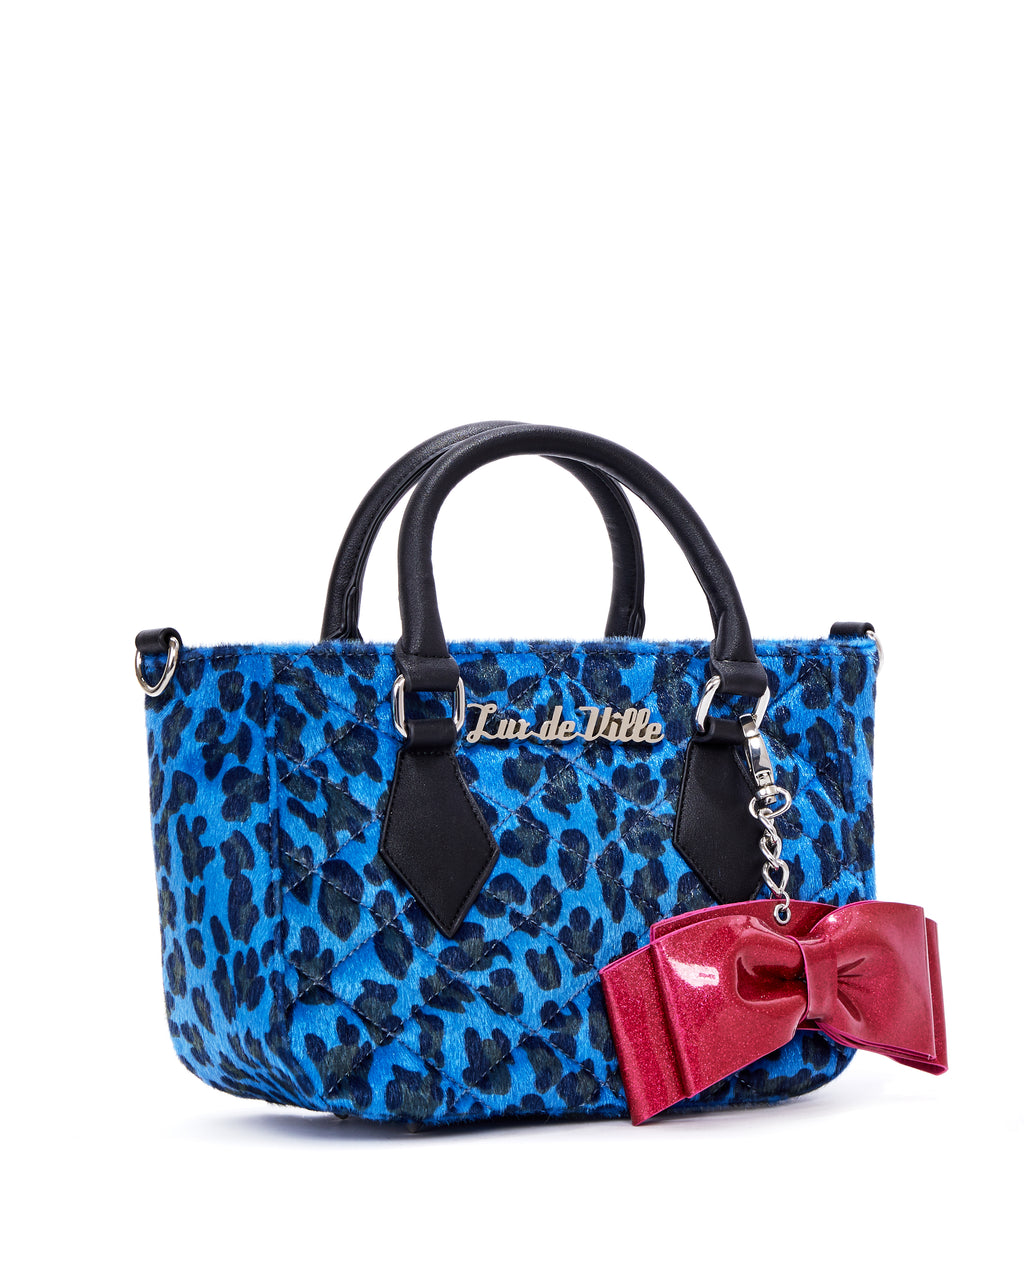 Mini Sweet Pea Handbag Blue Leopard - Limited Edition - Mini Atomic Totes